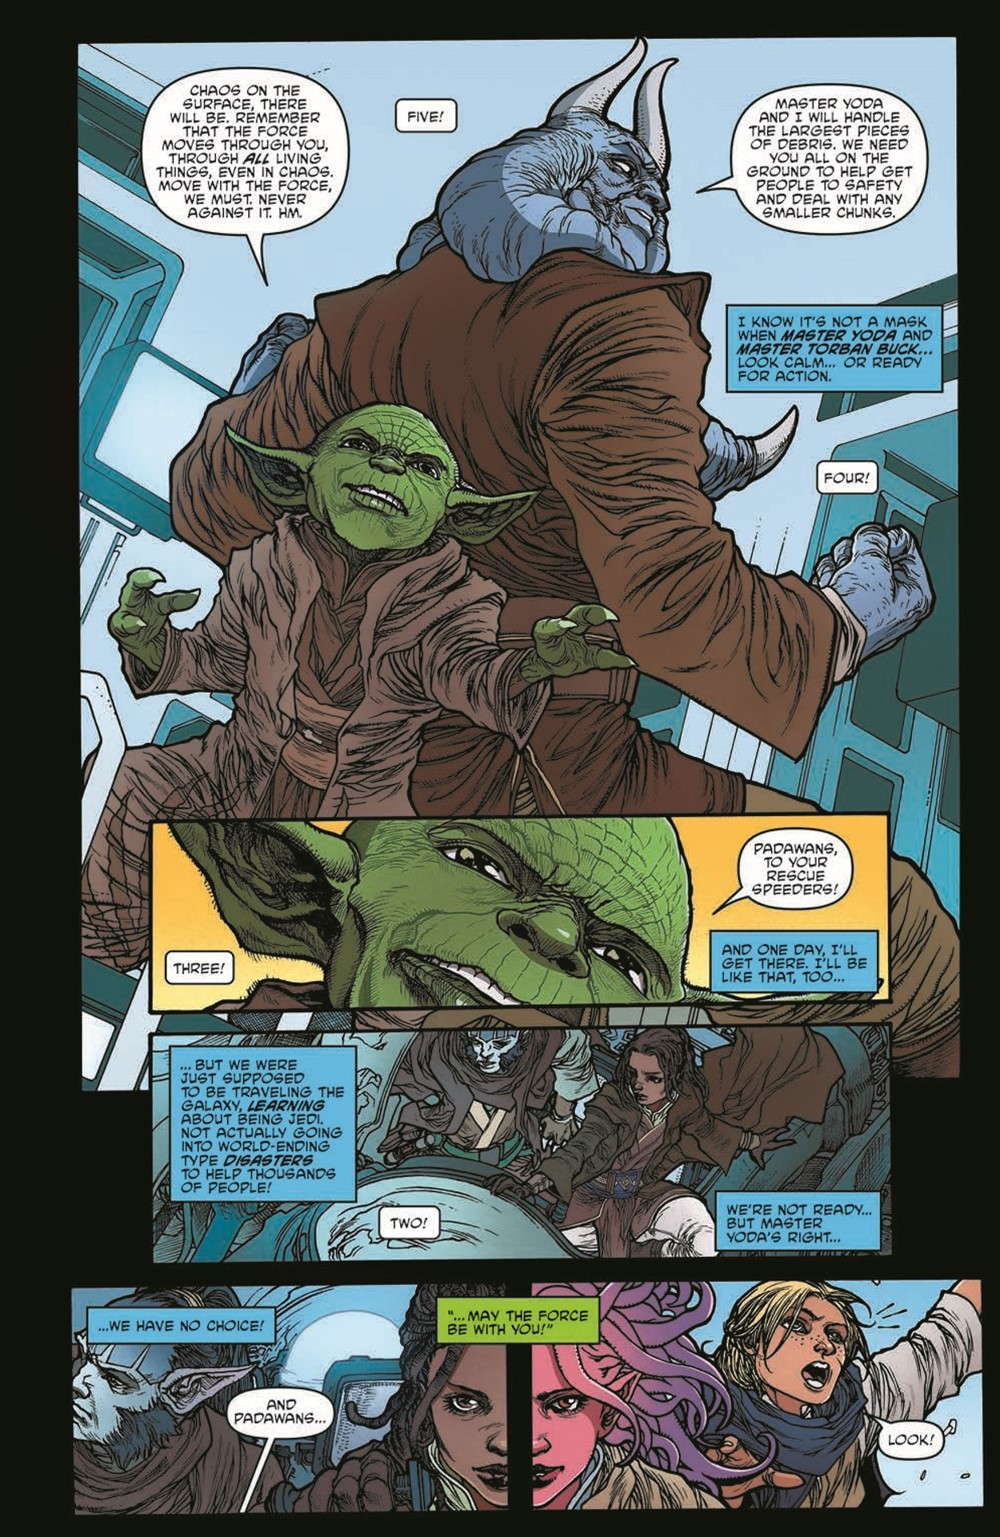 SWAHRA01-pr-7 ComicList Previews: STAR WARS THE HIGH REPUBLIC ADVENTURES #1